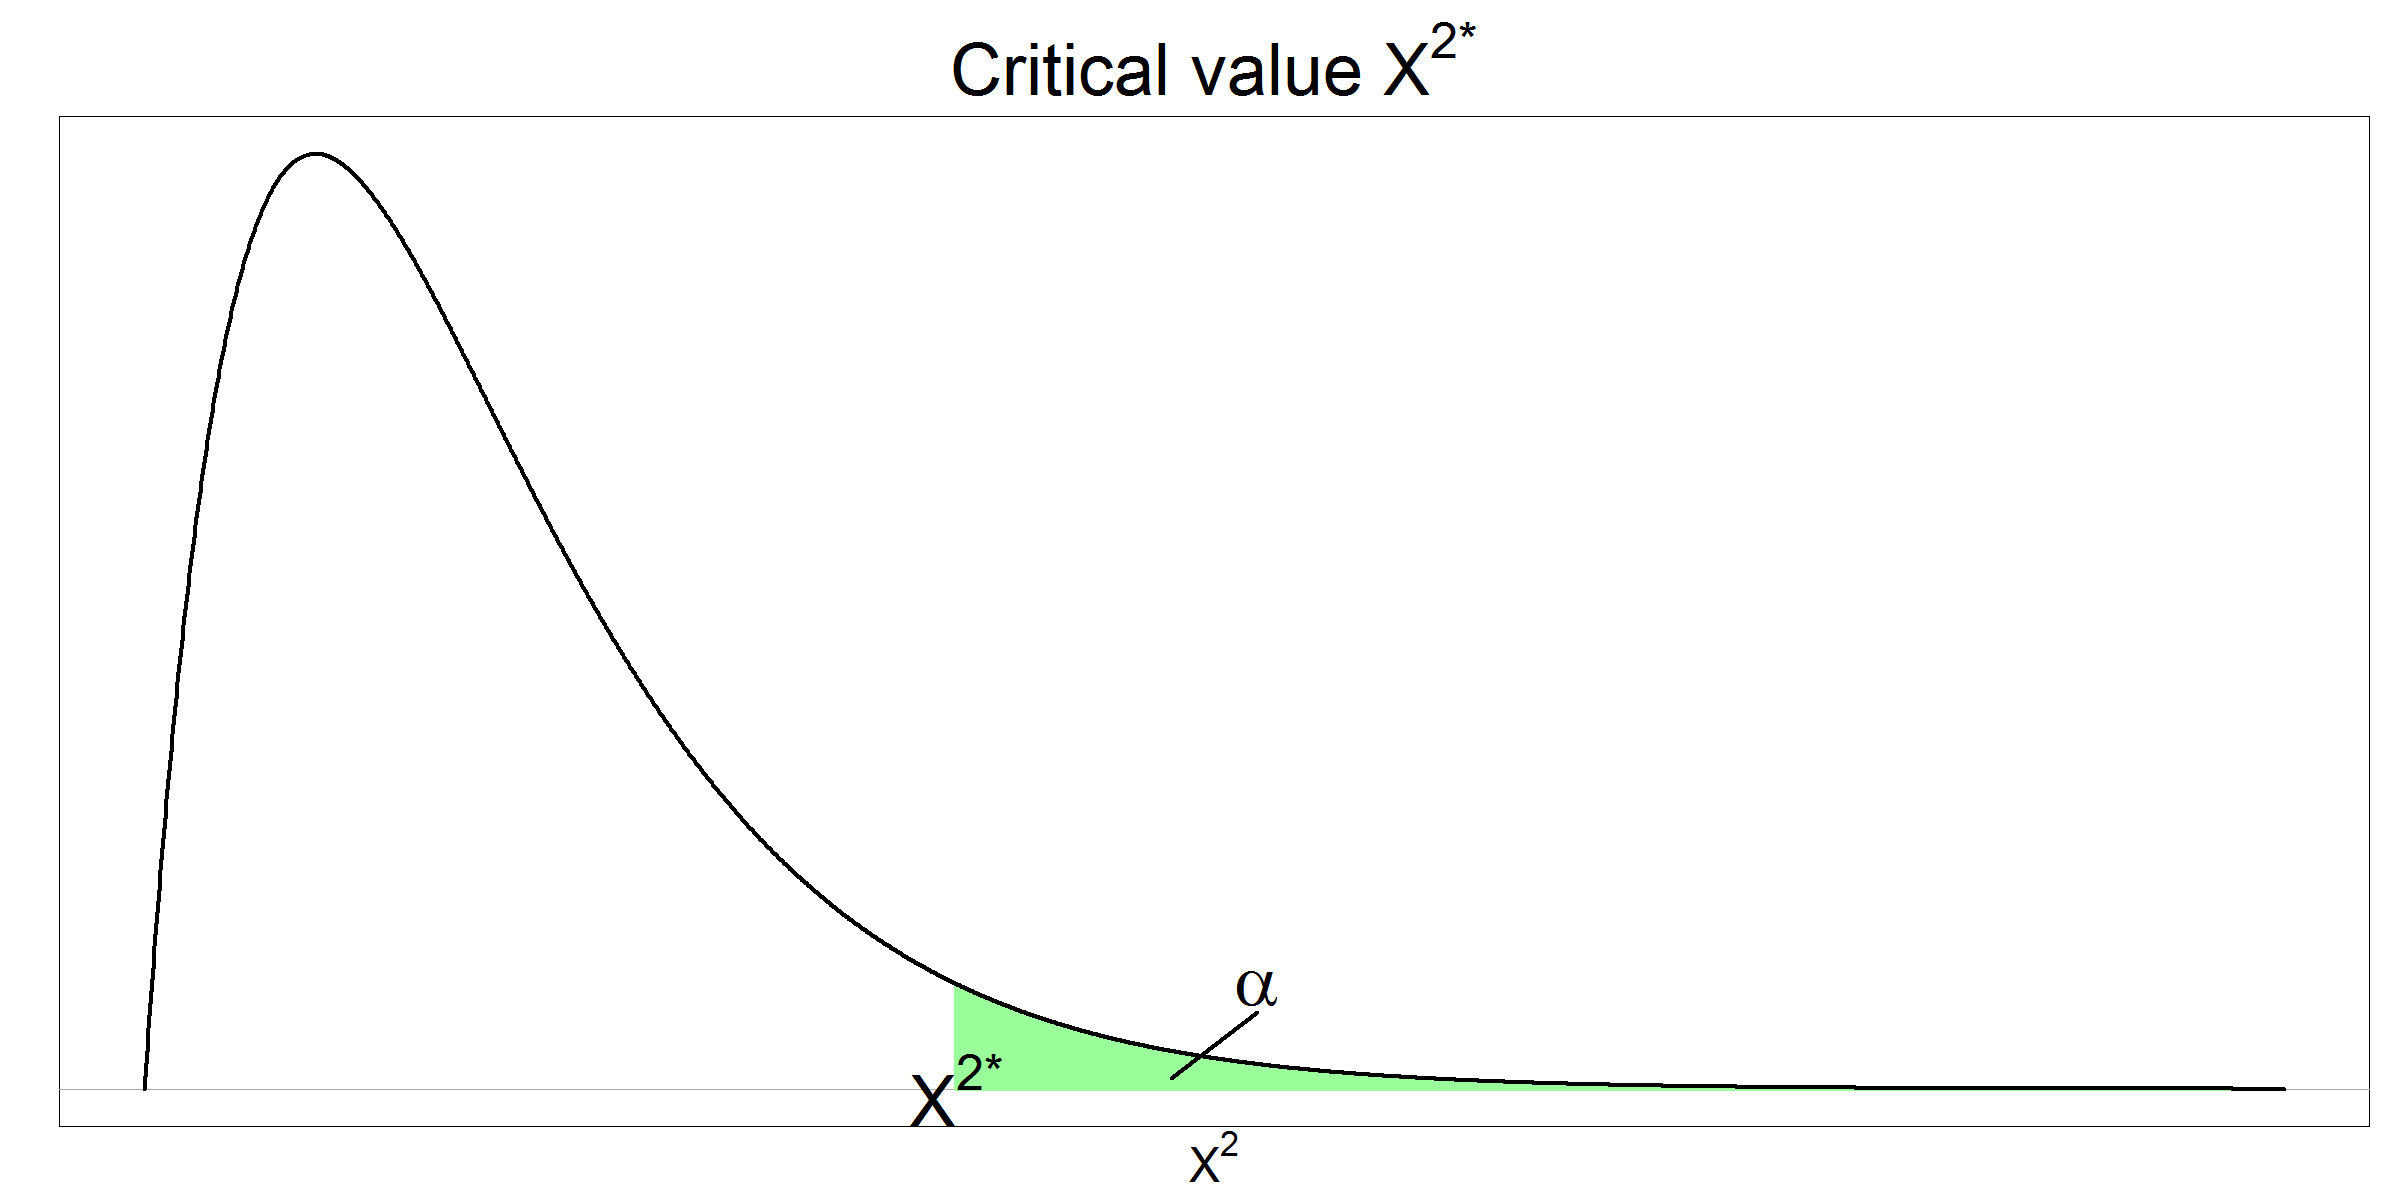 Critical chi squared value given alpha